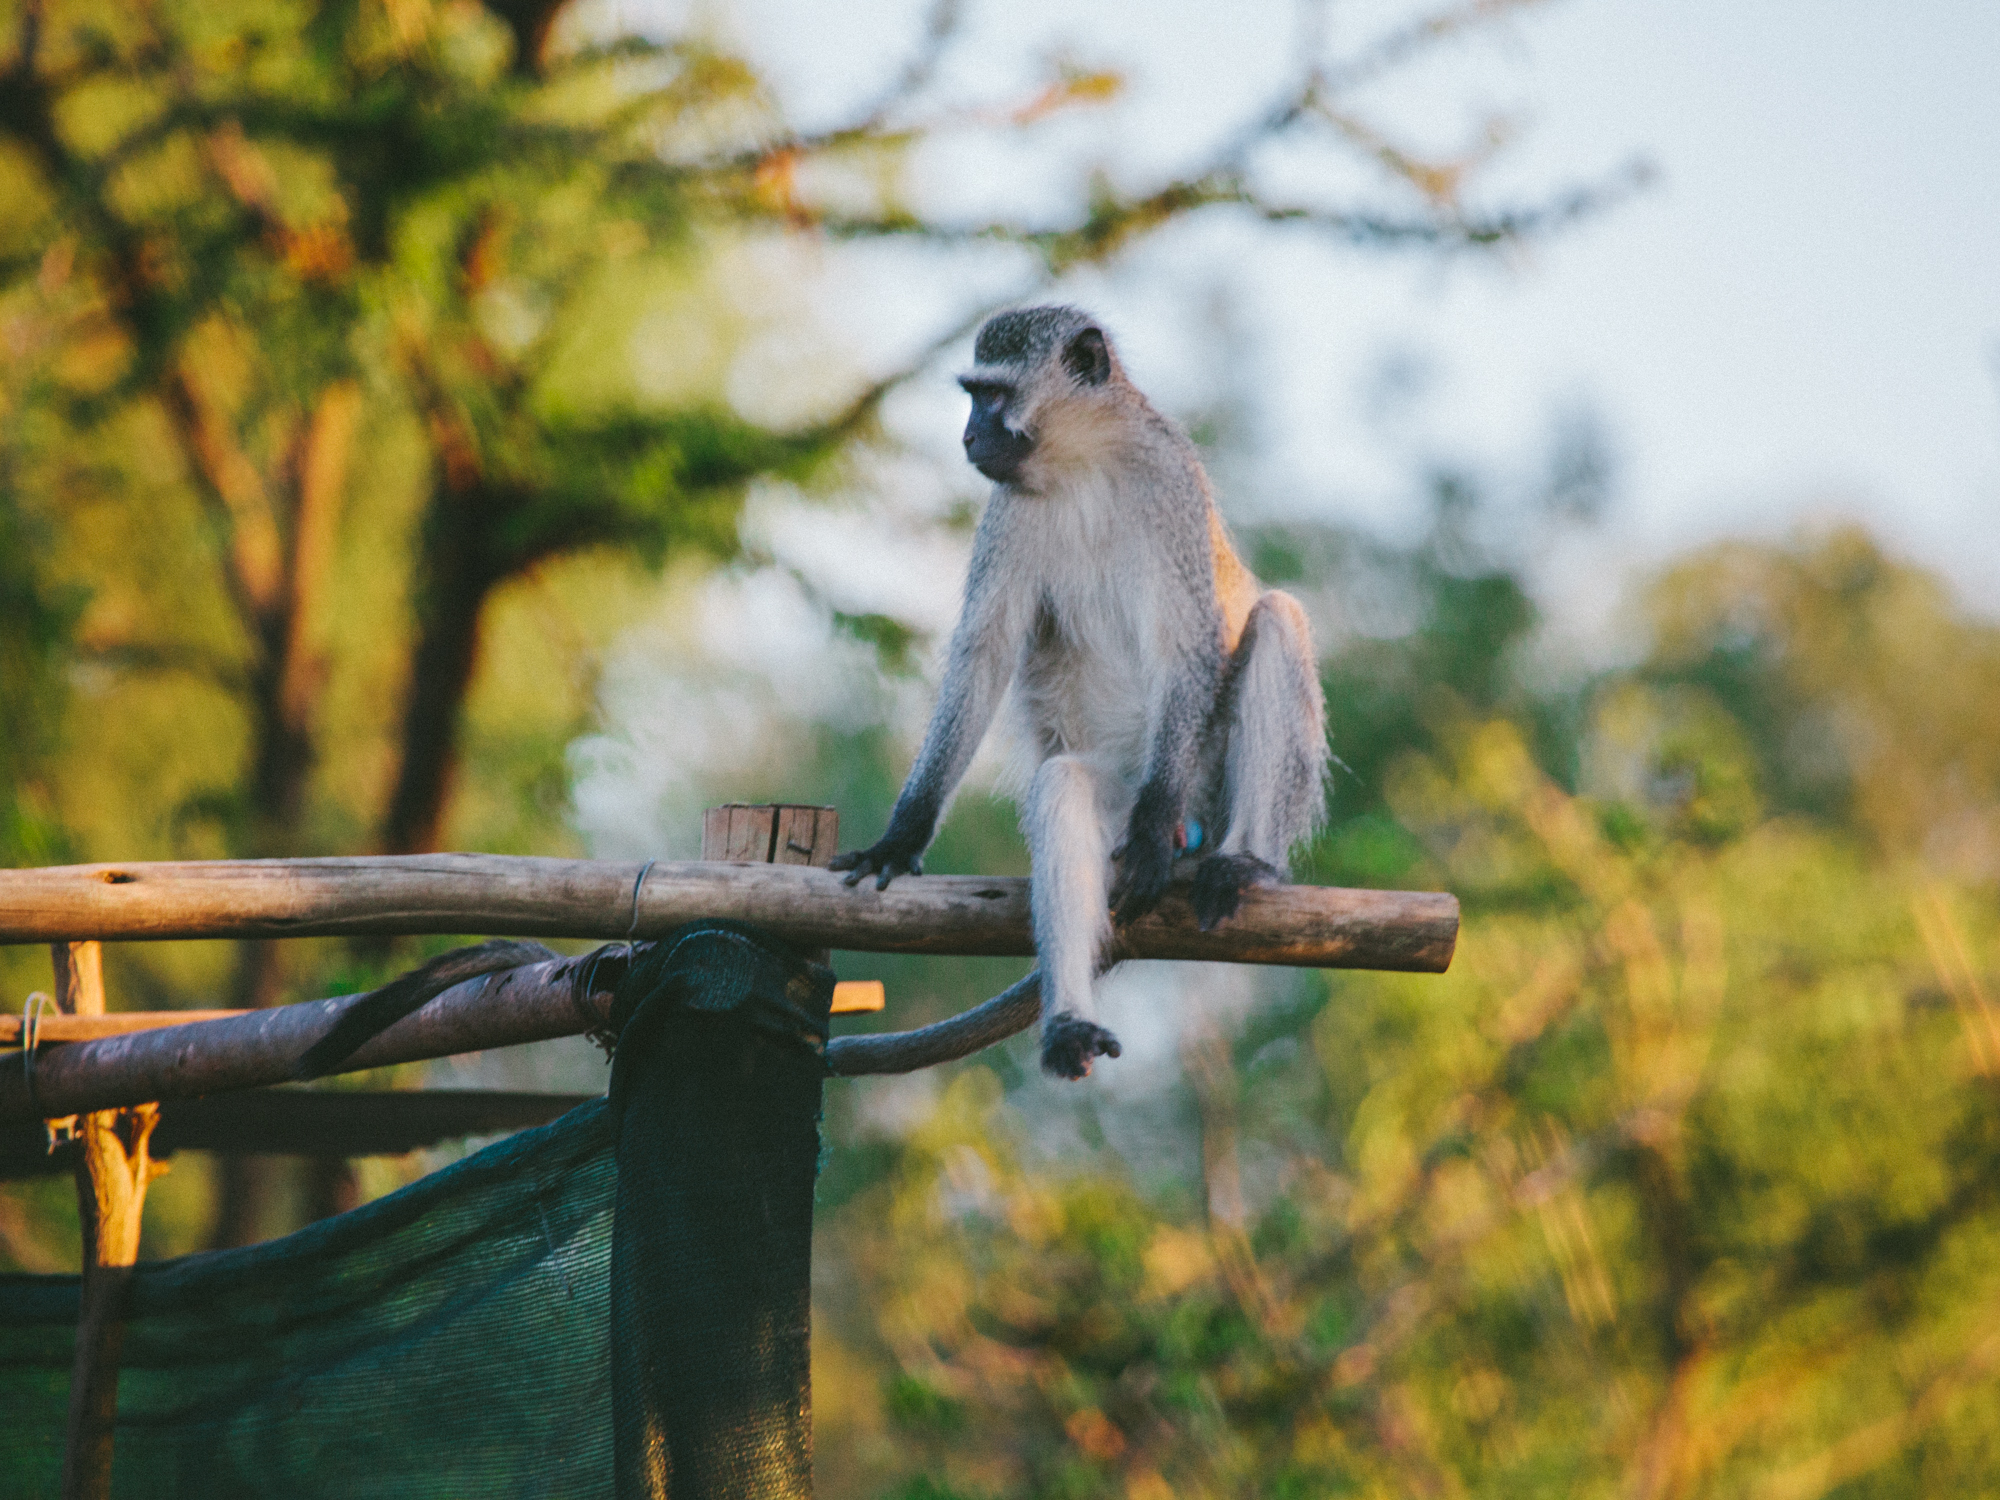 A vervet takes advantage of one of the structures in his enclosure